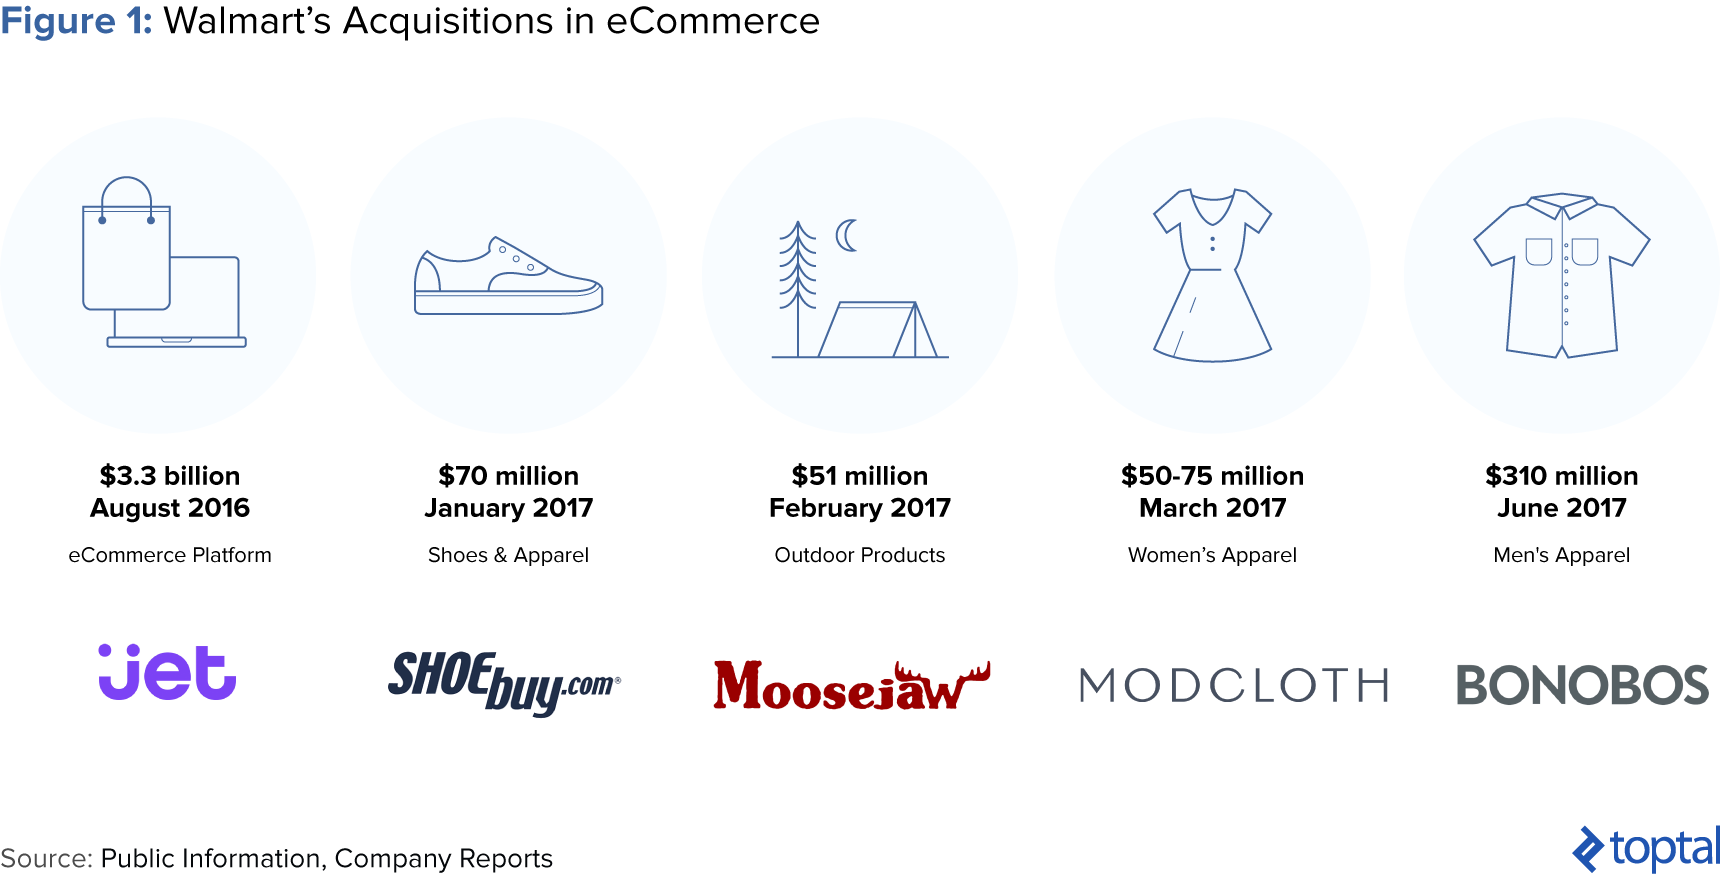 Figure 1: Walmart's Acquisitions in eCommerce